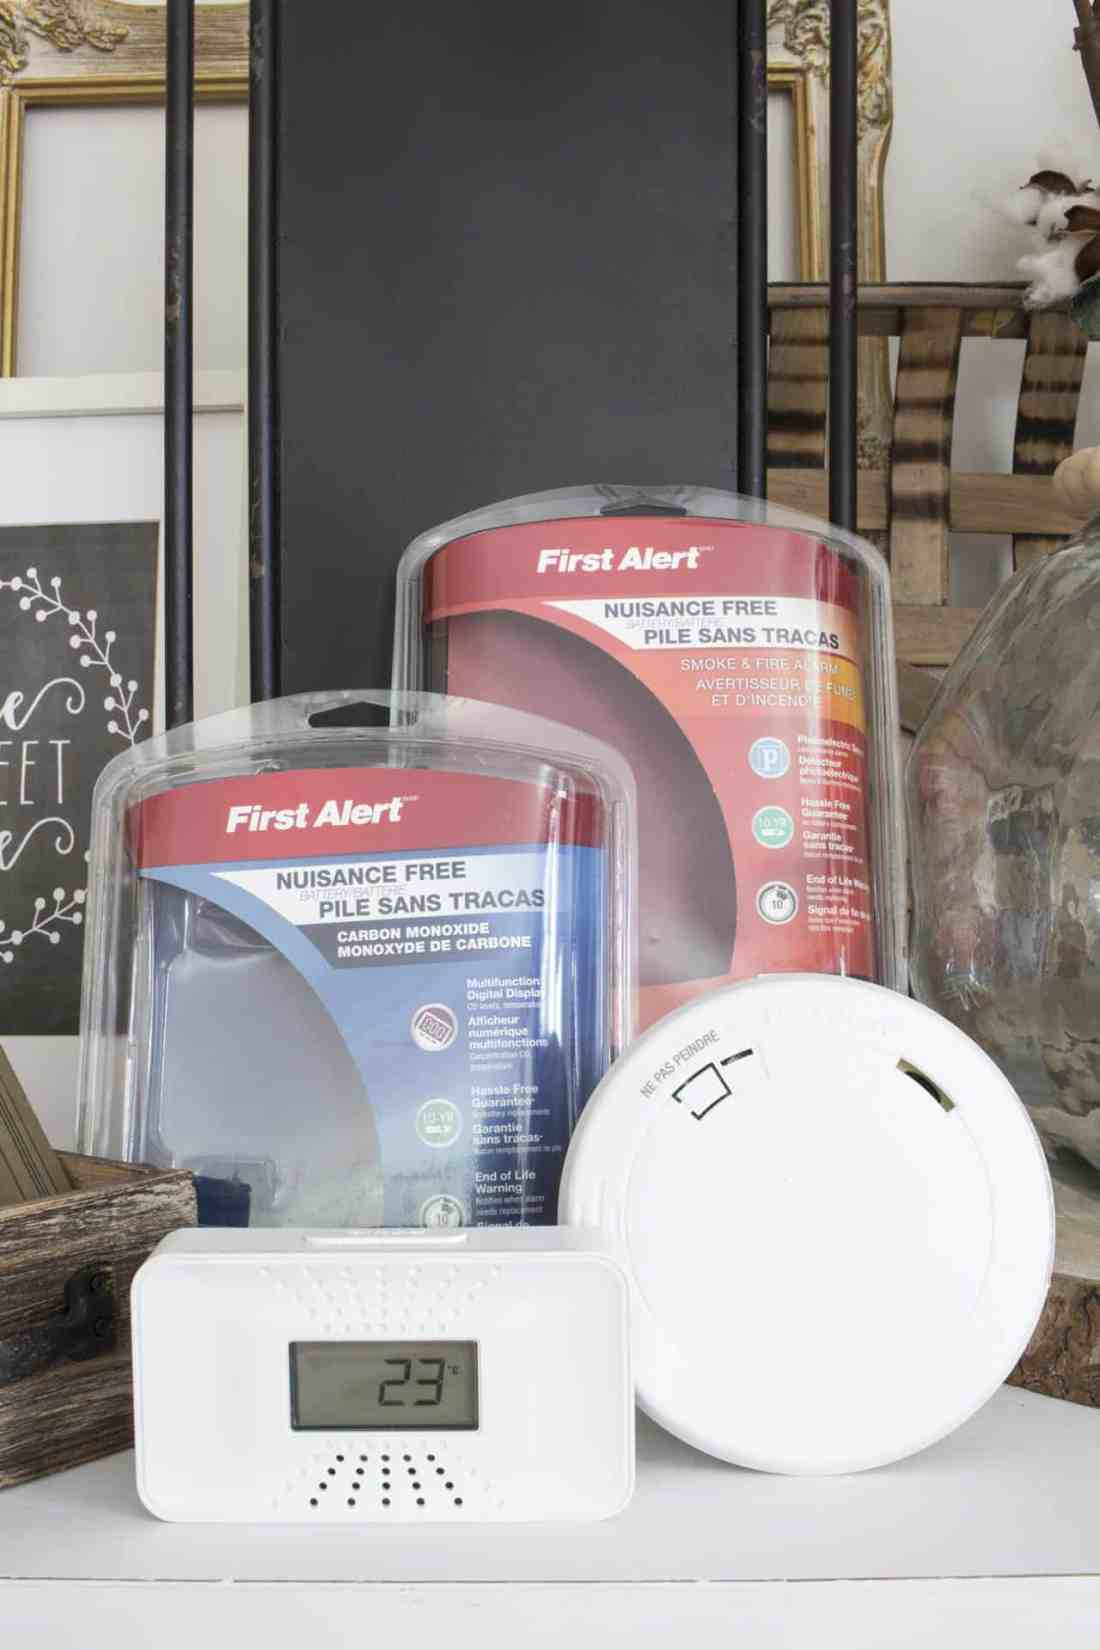 First Alert CO and Fire Alarm with packages